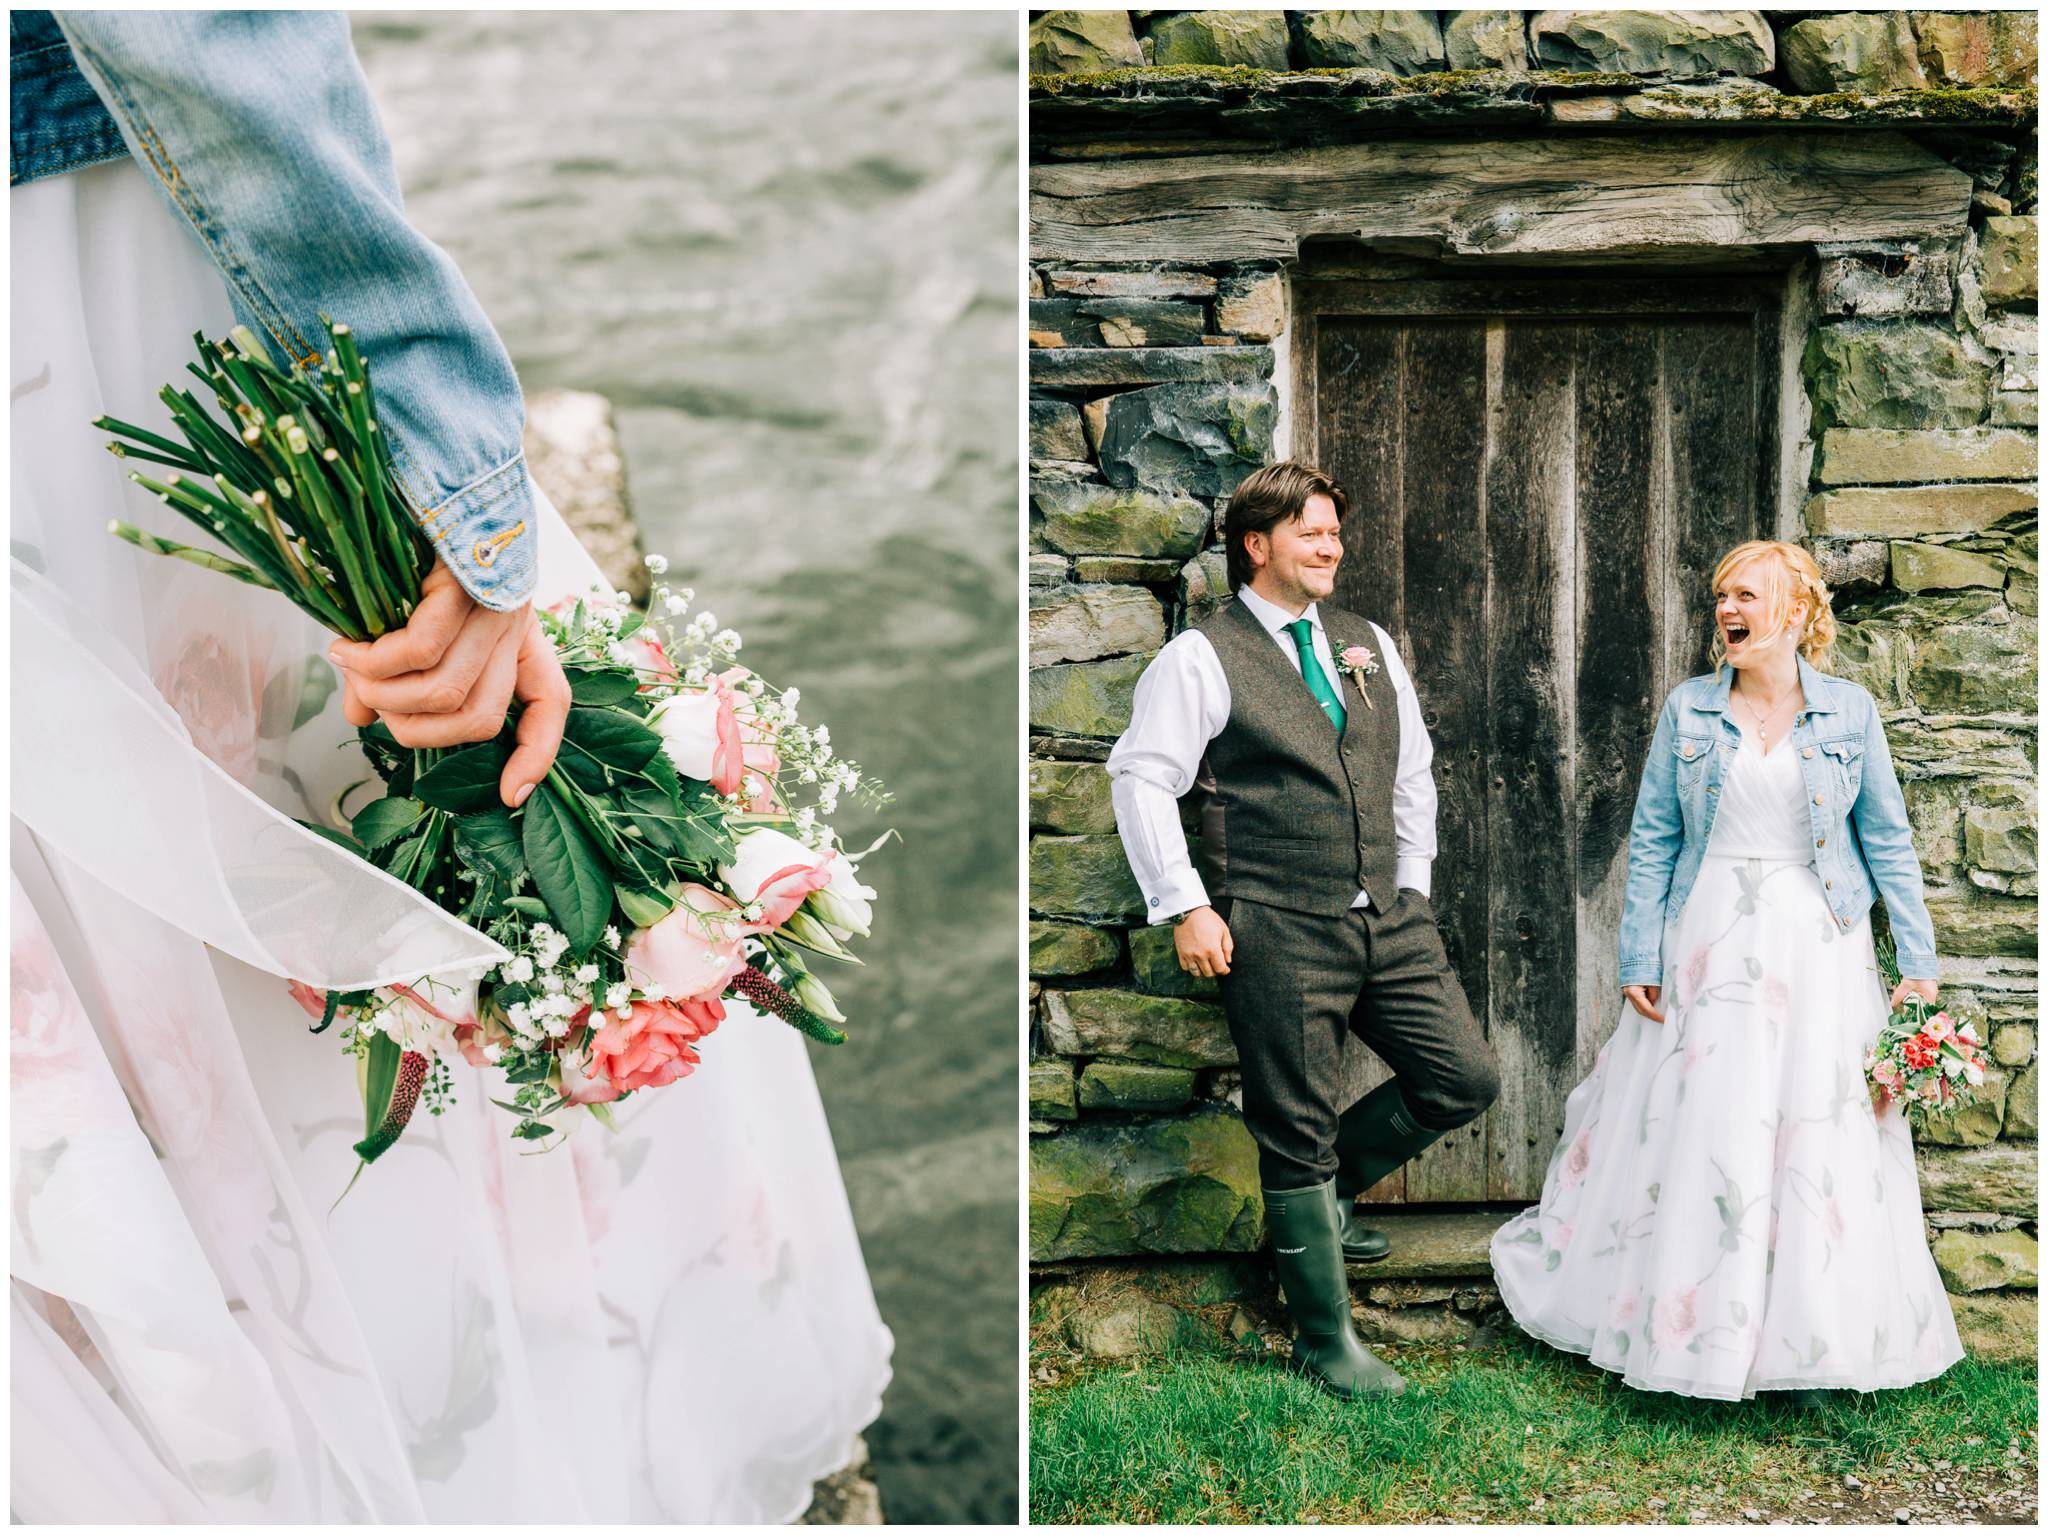 Natural wedding photography Manchester - Clare Robinson Photography_0207.jpg